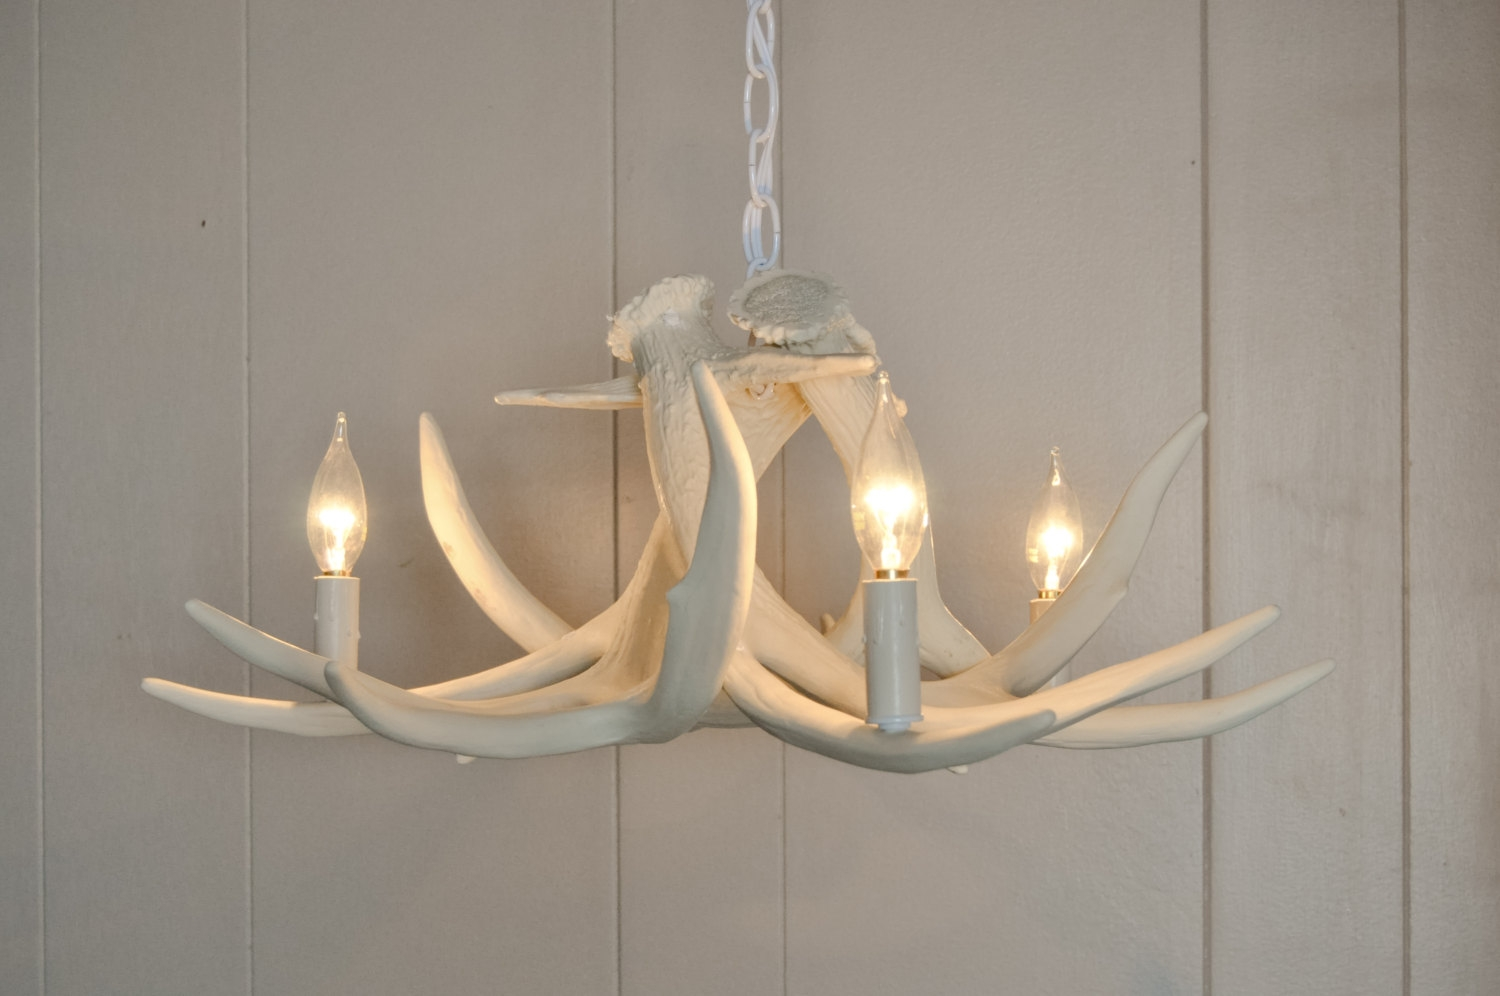 White Antler Chandelier Faux Antler Chandelier W3c Antler Intended For Antler Chandeliers And Lighting (Image 15 of 15)